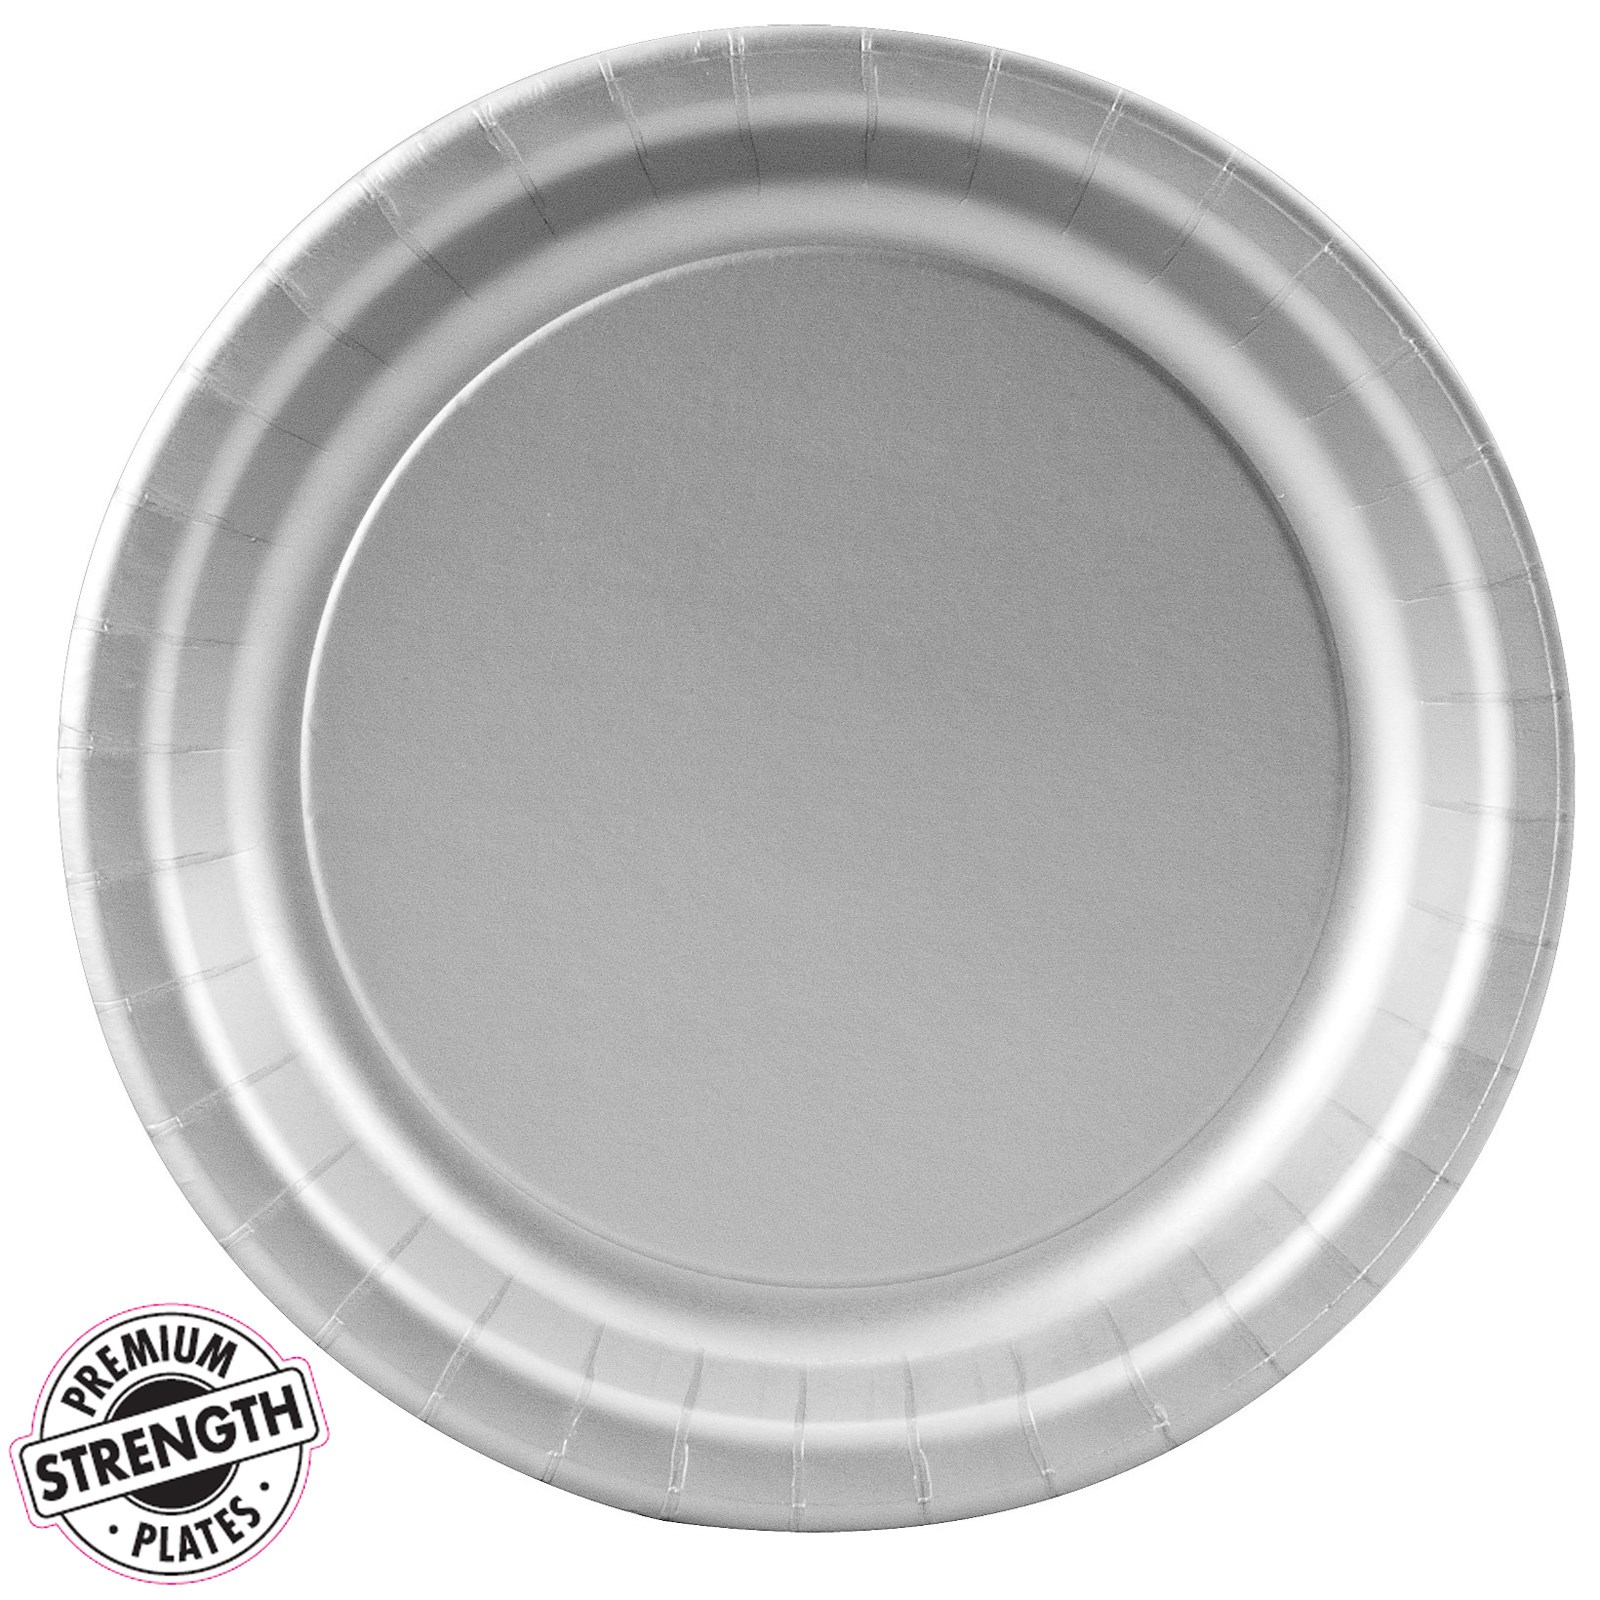 shimmering silver silver paper dessert plates 24 count. Black Bedroom Furniture Sets. Home Design Ideas